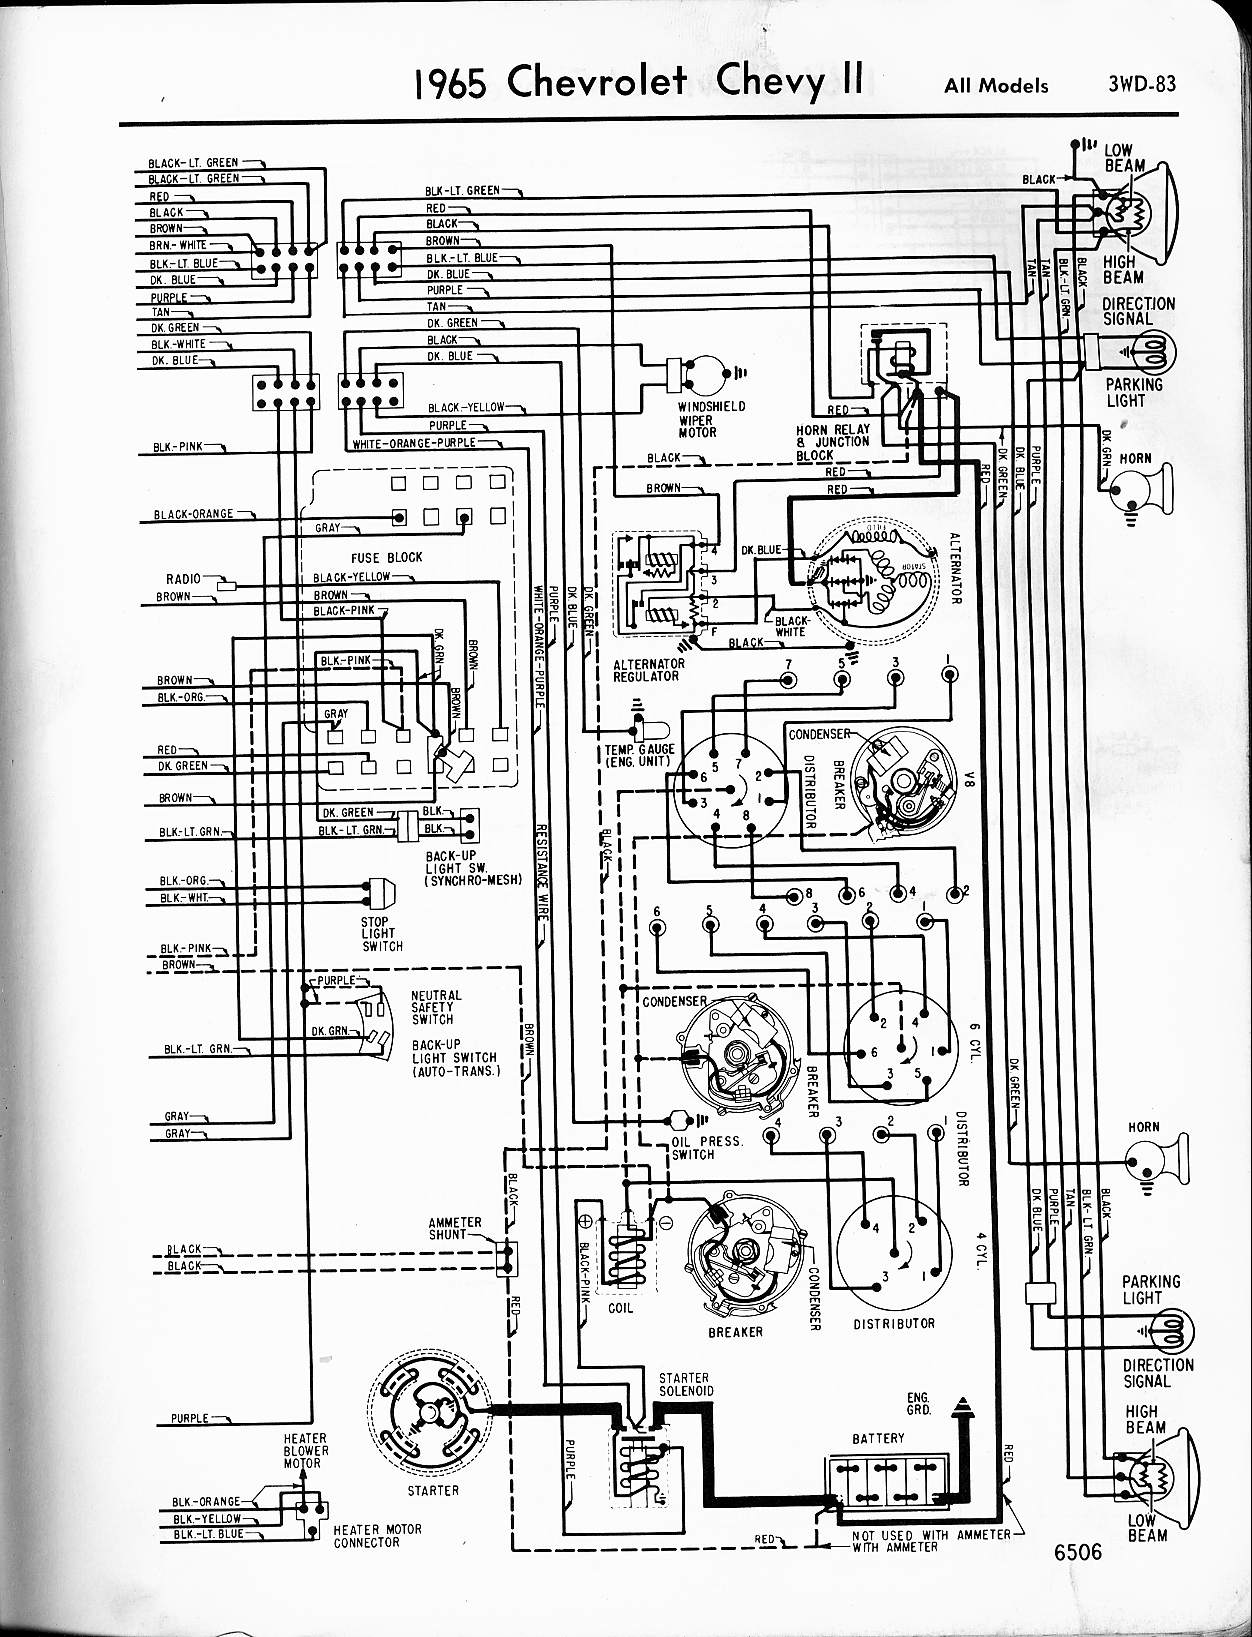 MWireChev65_3WD 083 chevy diagrams 65 mustang tail light wiring diagram at crackthecode.co